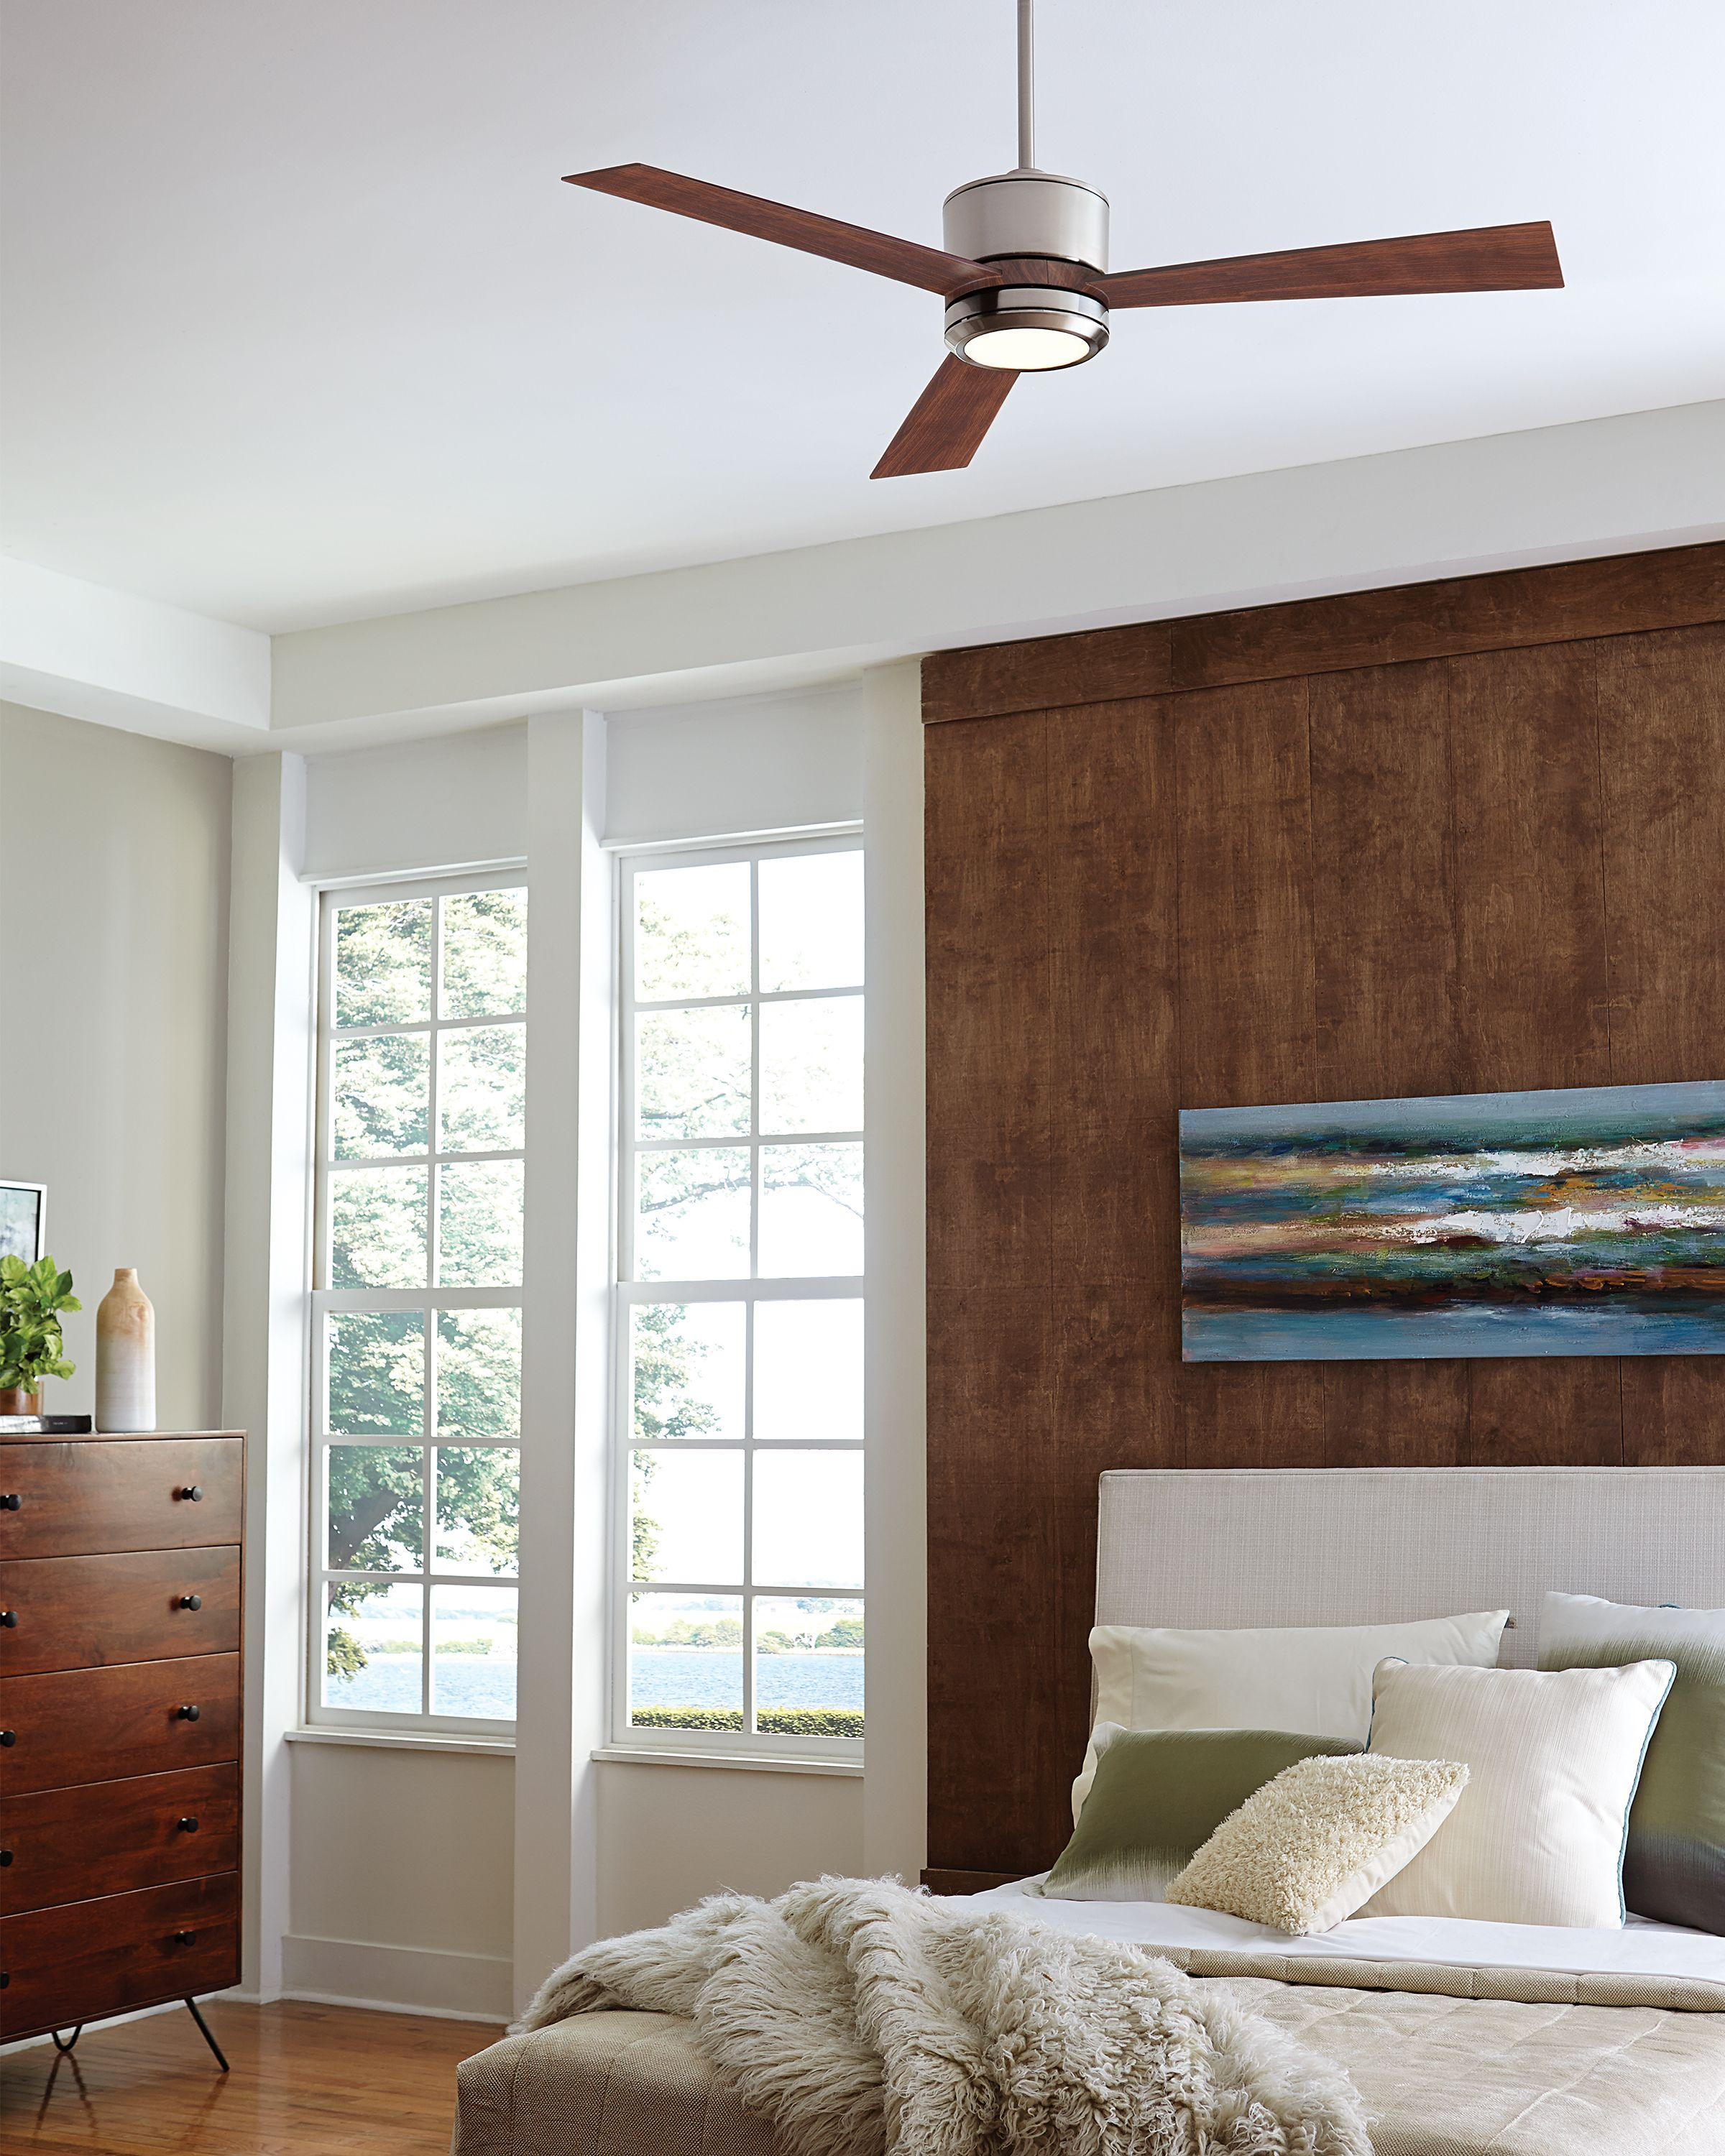 Similar to the popular Clarity hugger ceiling